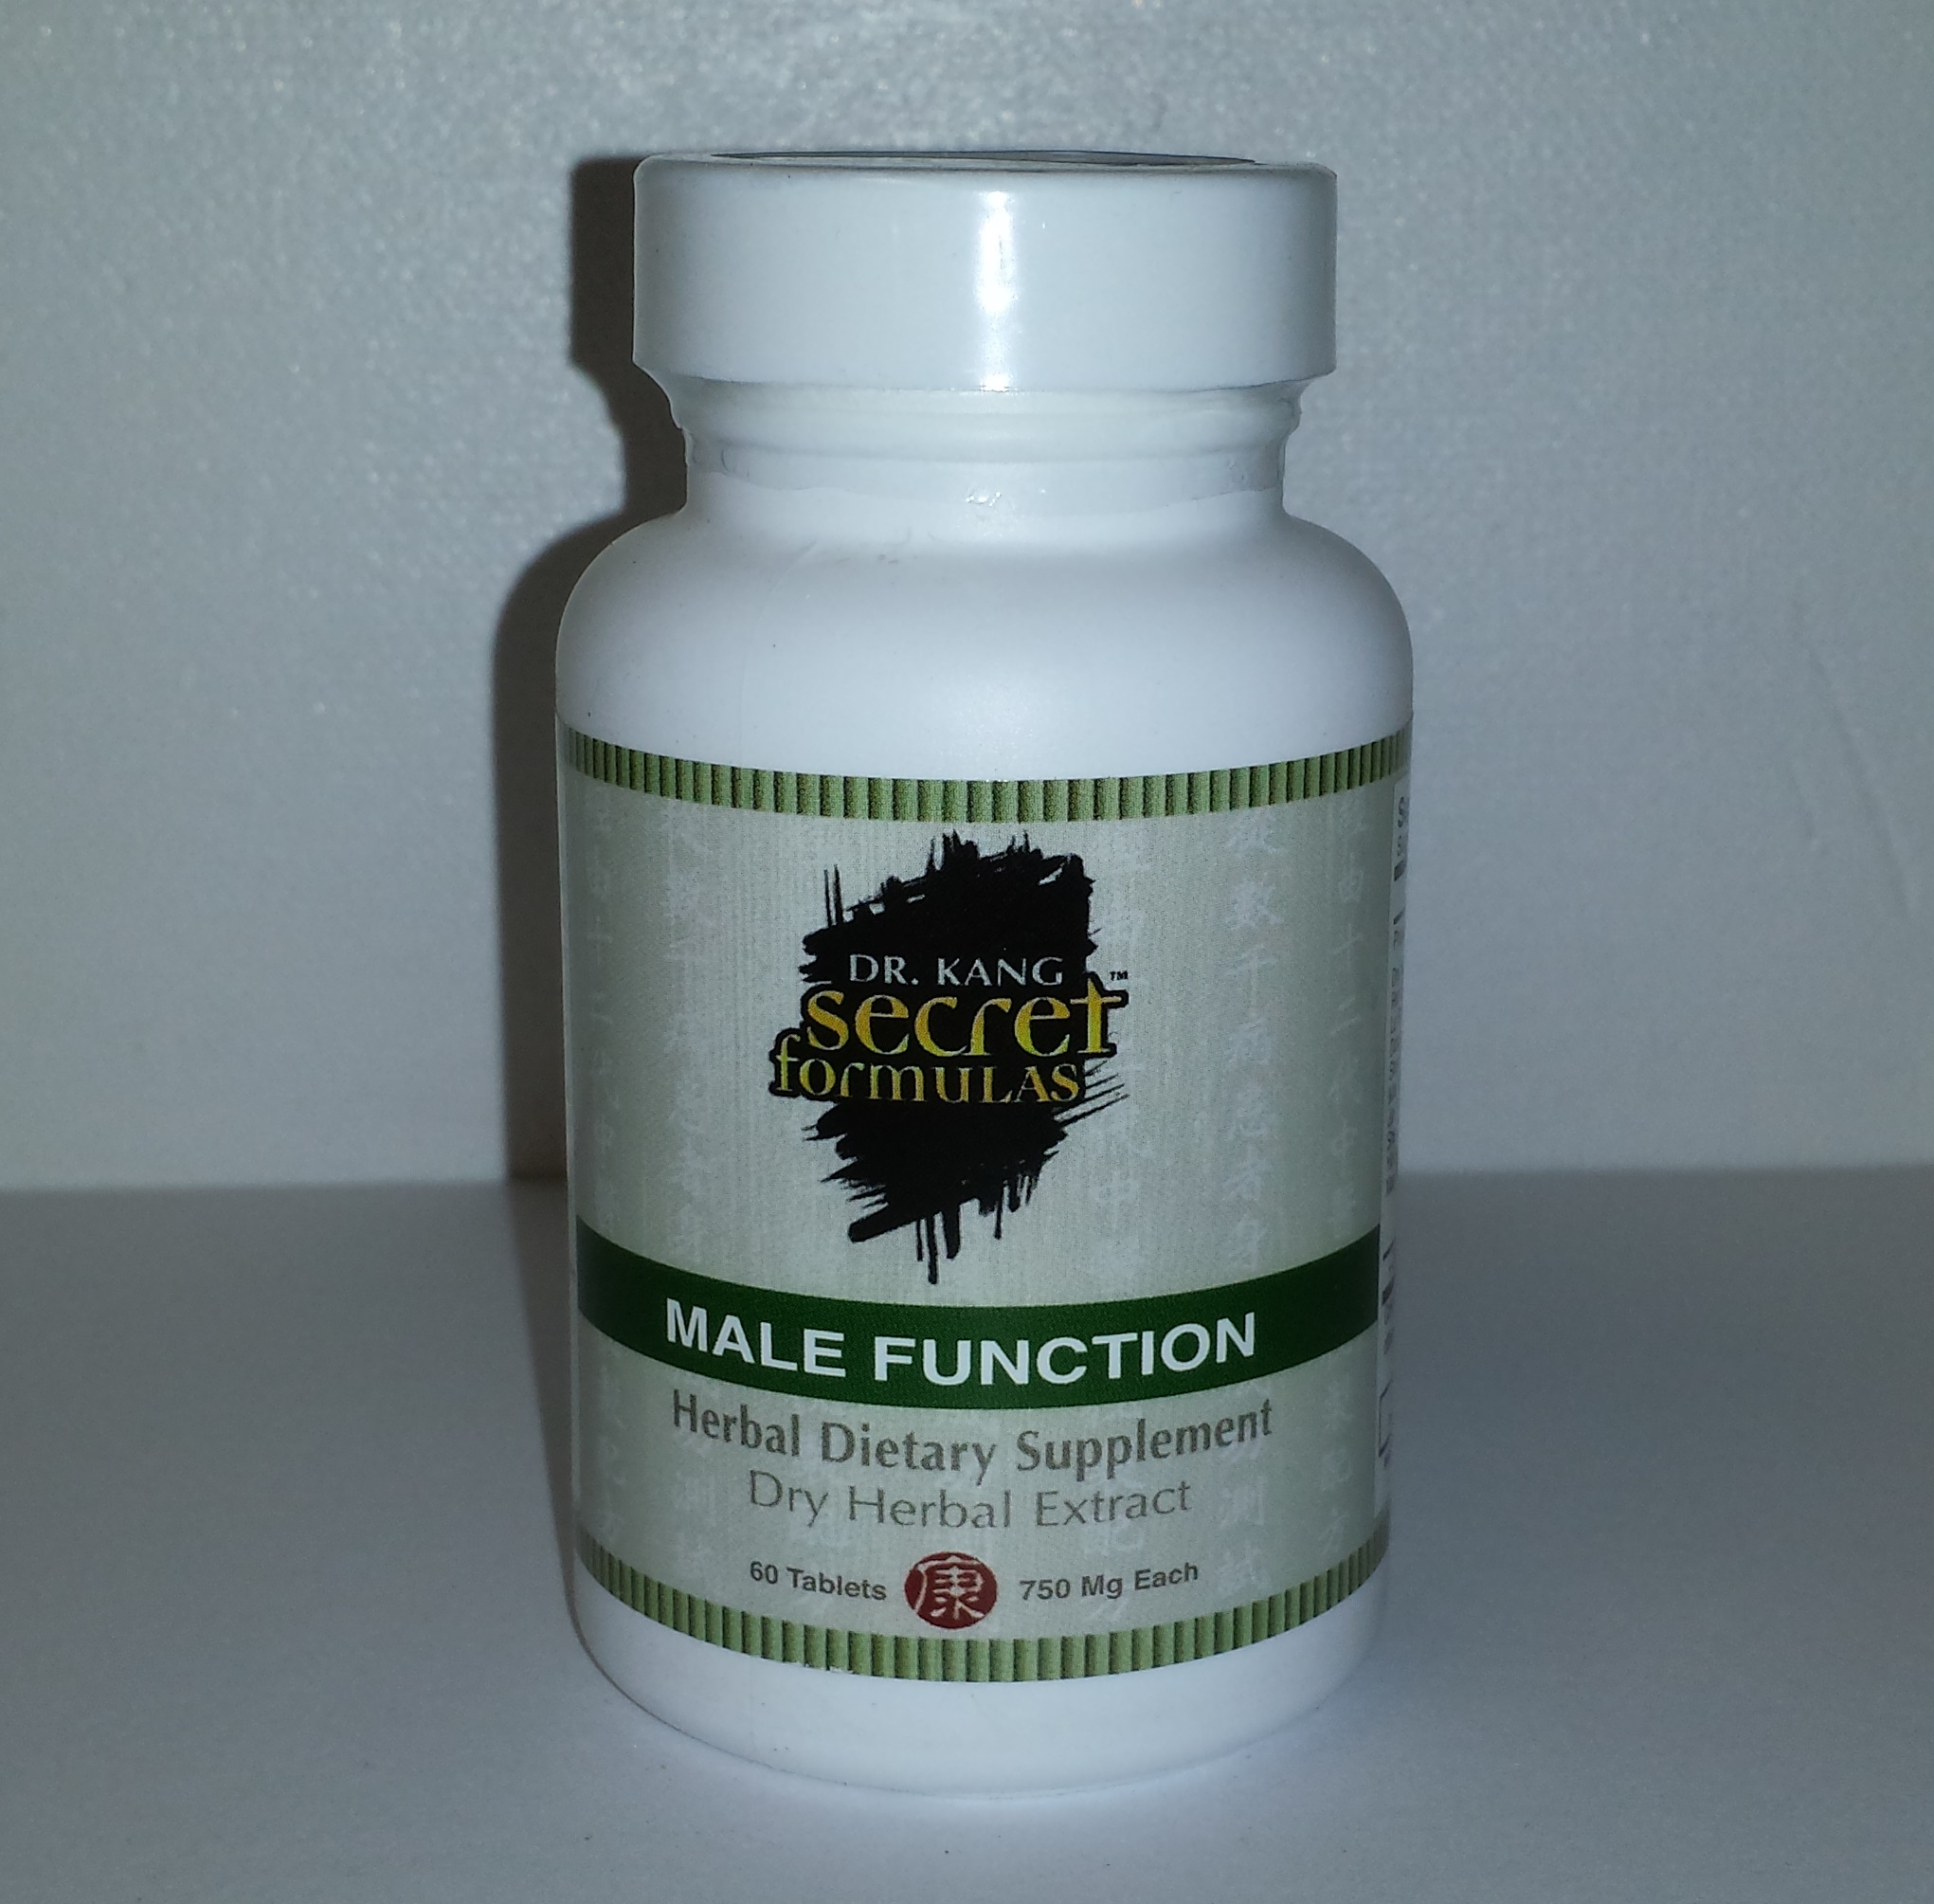 39-MaleFunction - Product Image